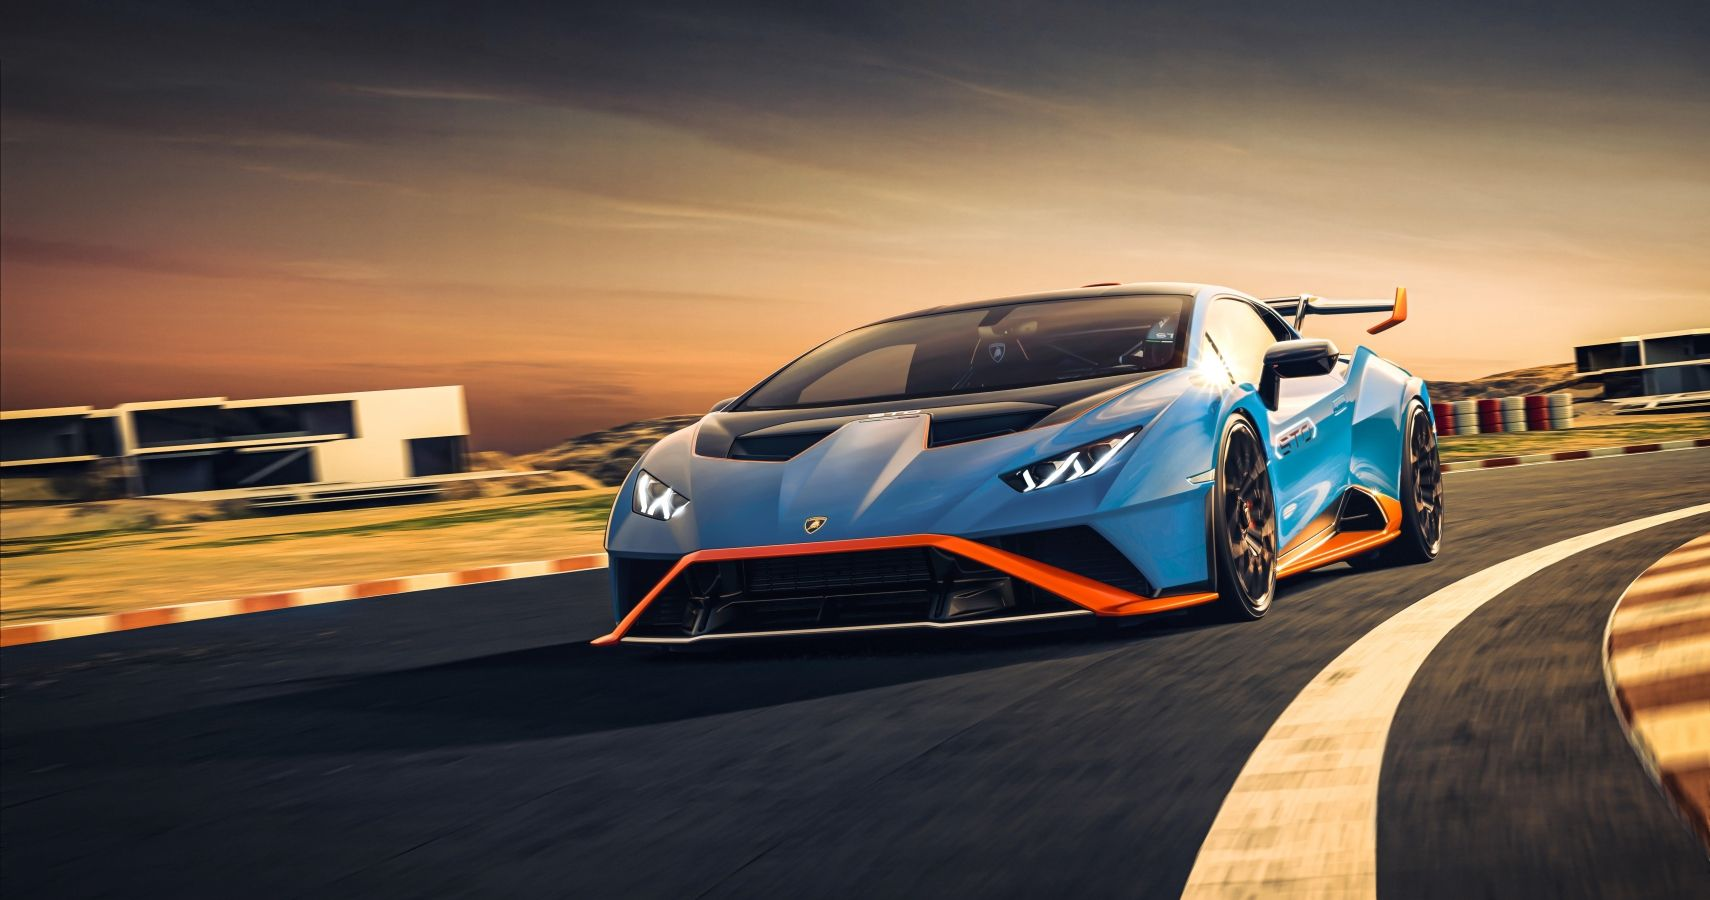 Lamborghini Is Less Concerned With Acceleration And Top Speed, Shifts Focus To Handling